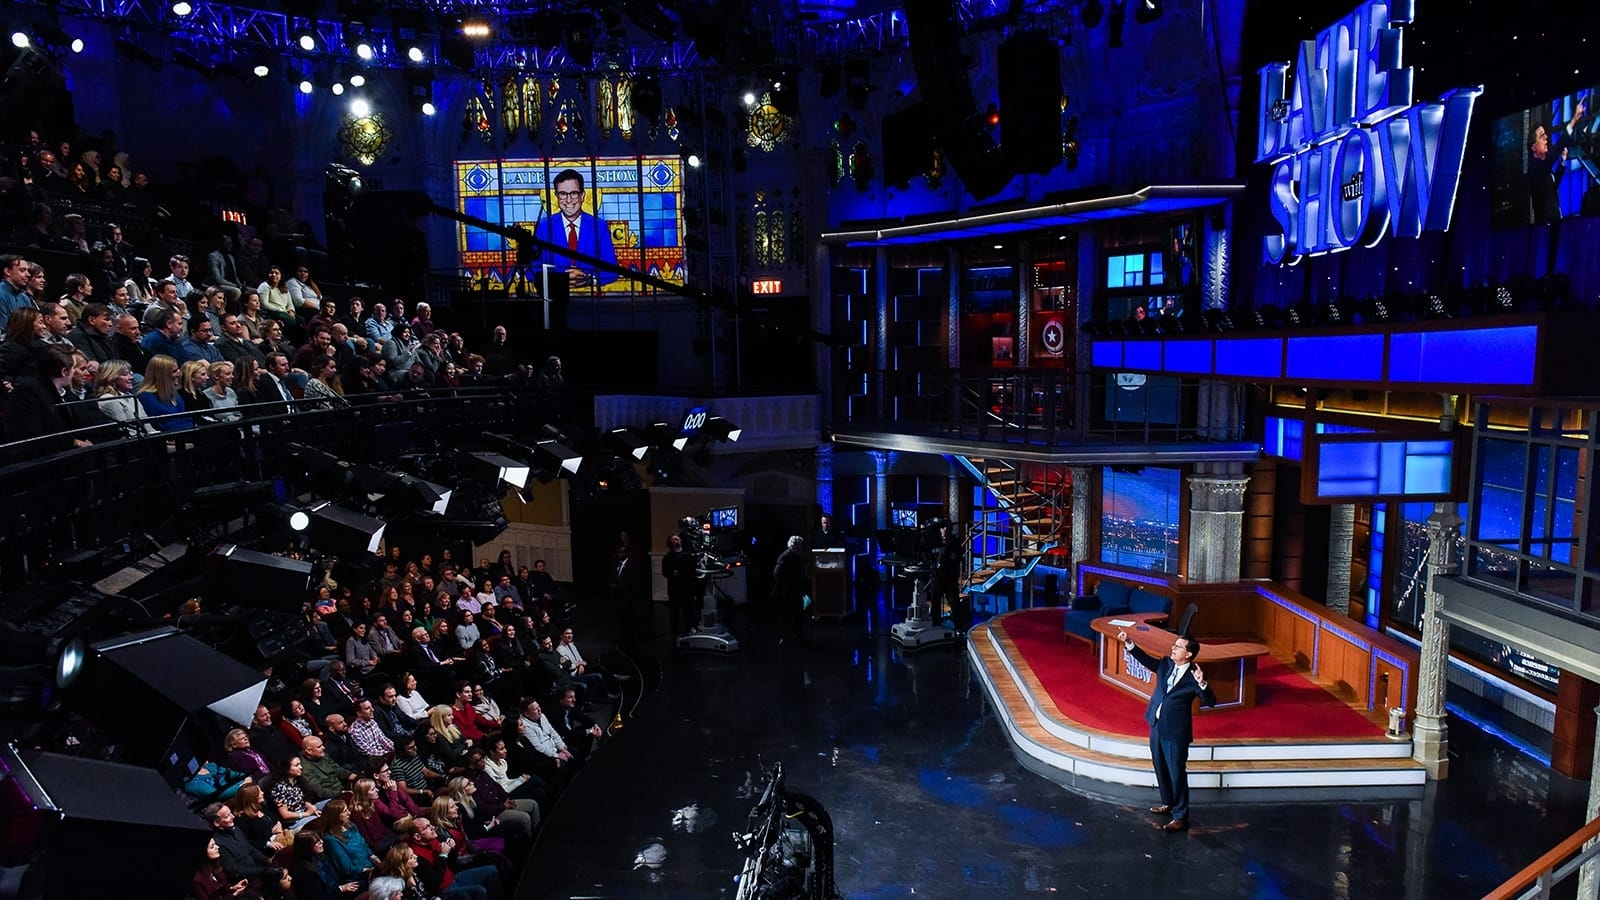 Stephen Colbert addresses an audience during filming for The Late Show